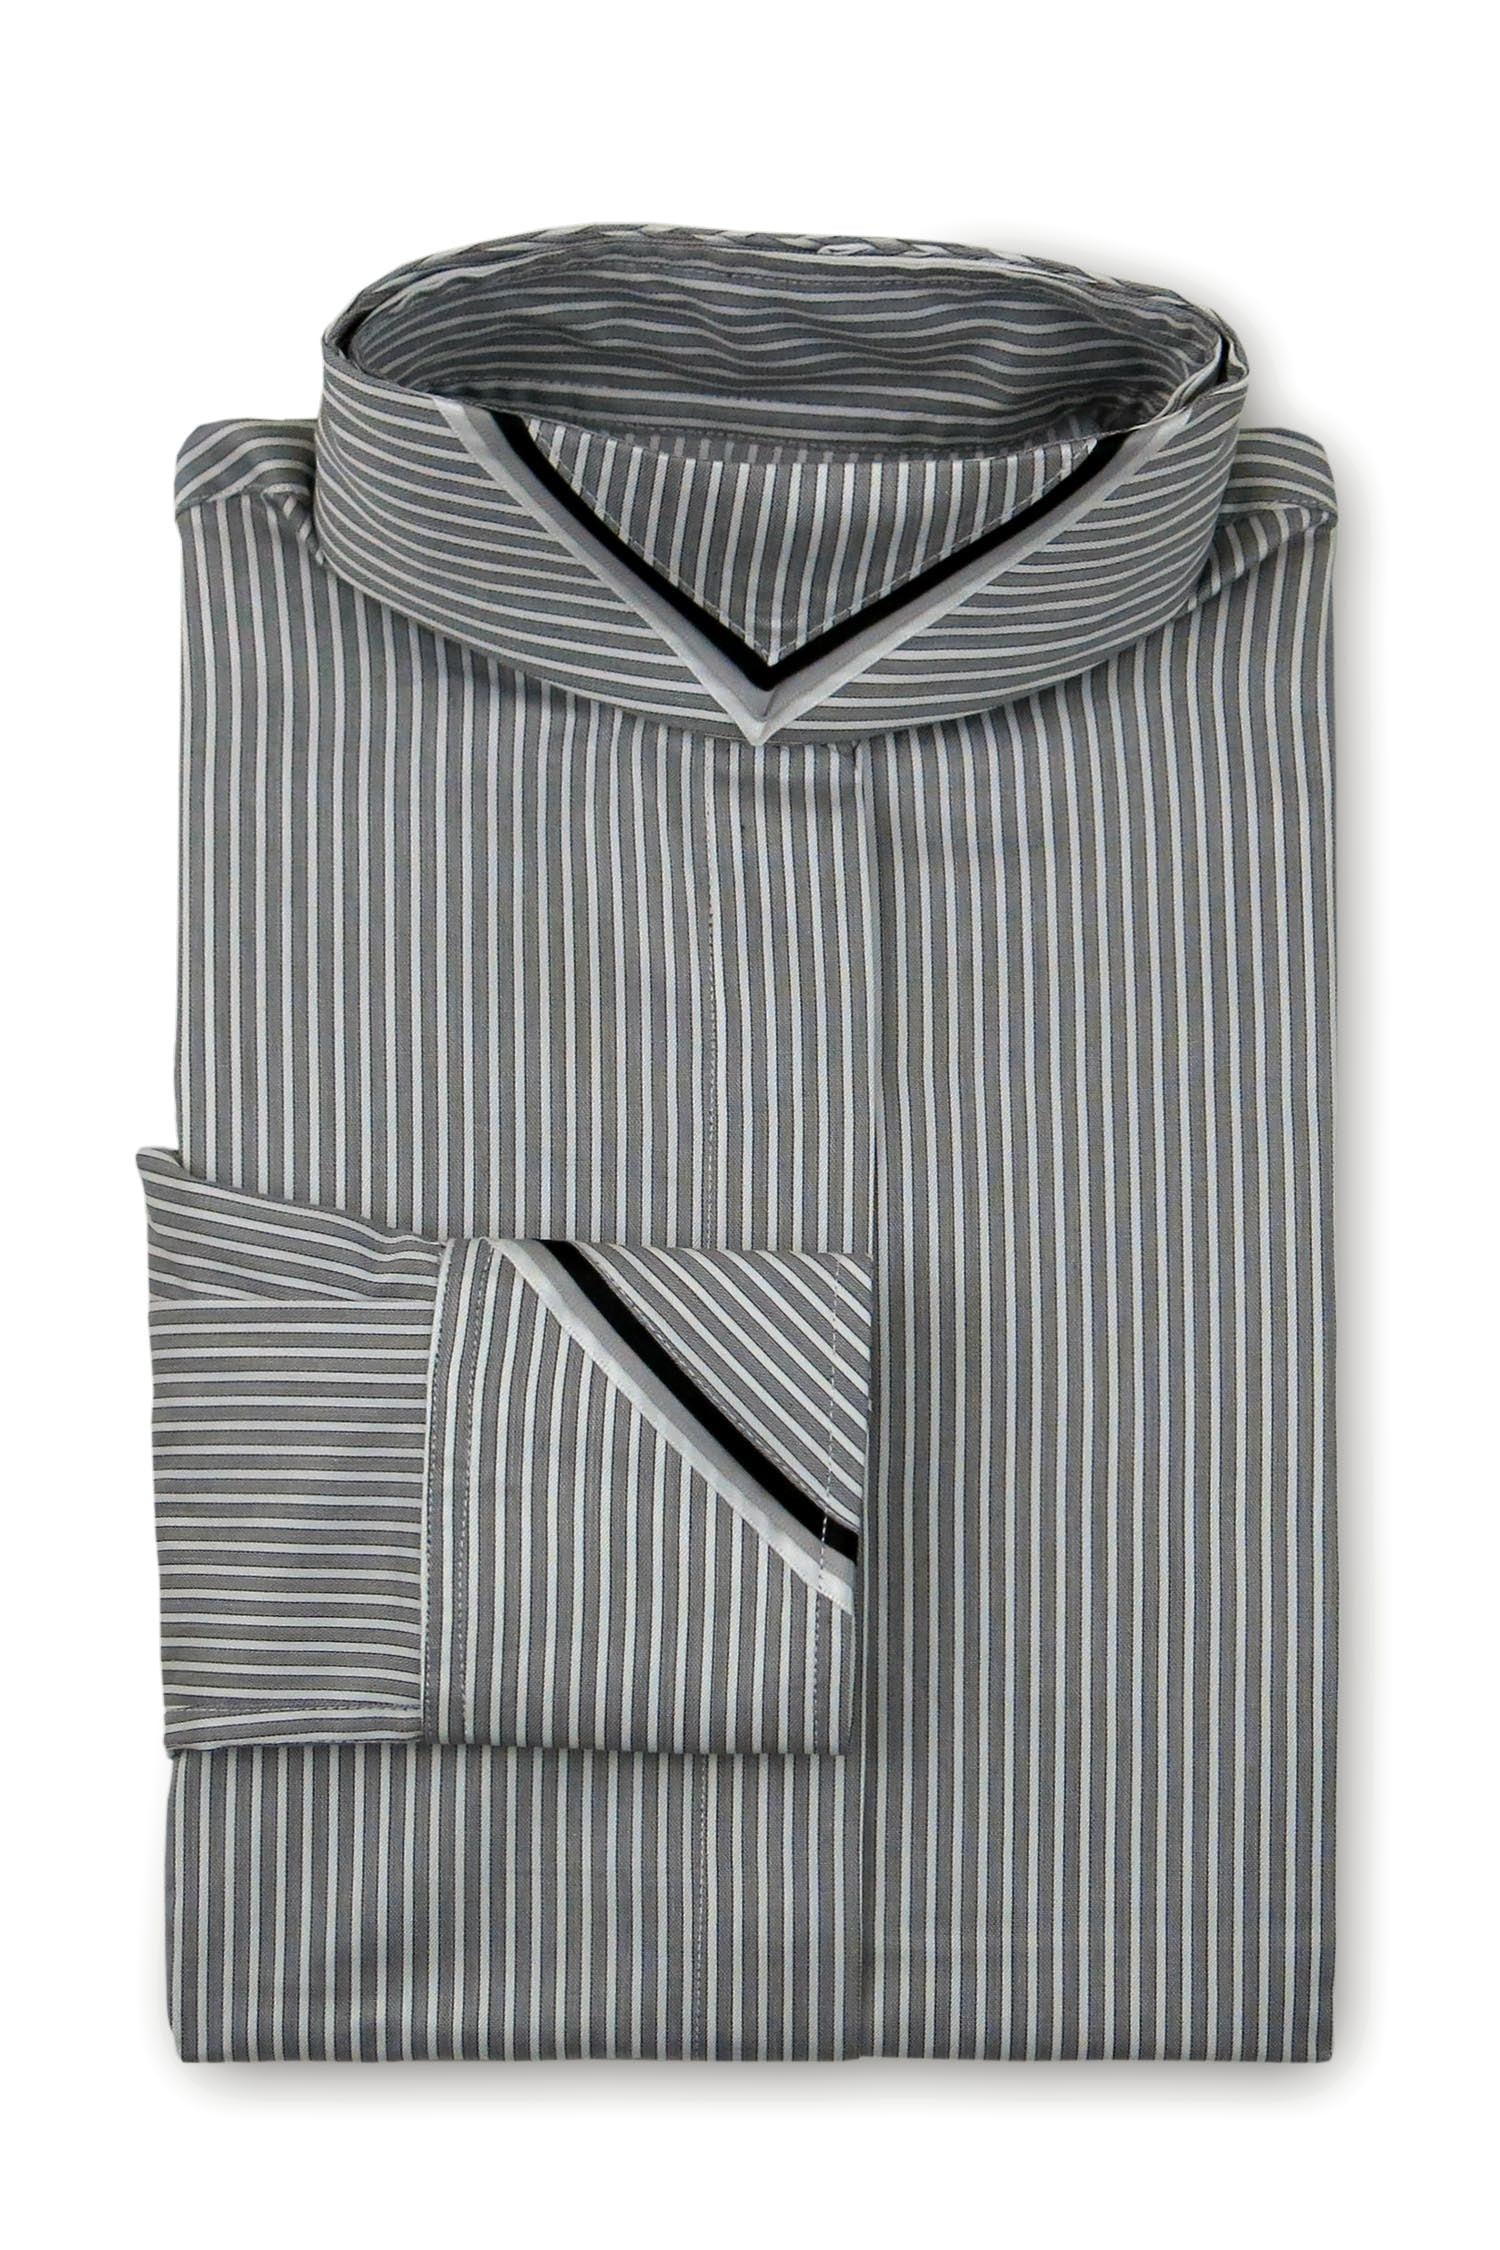 Grey Stripe - Black & White